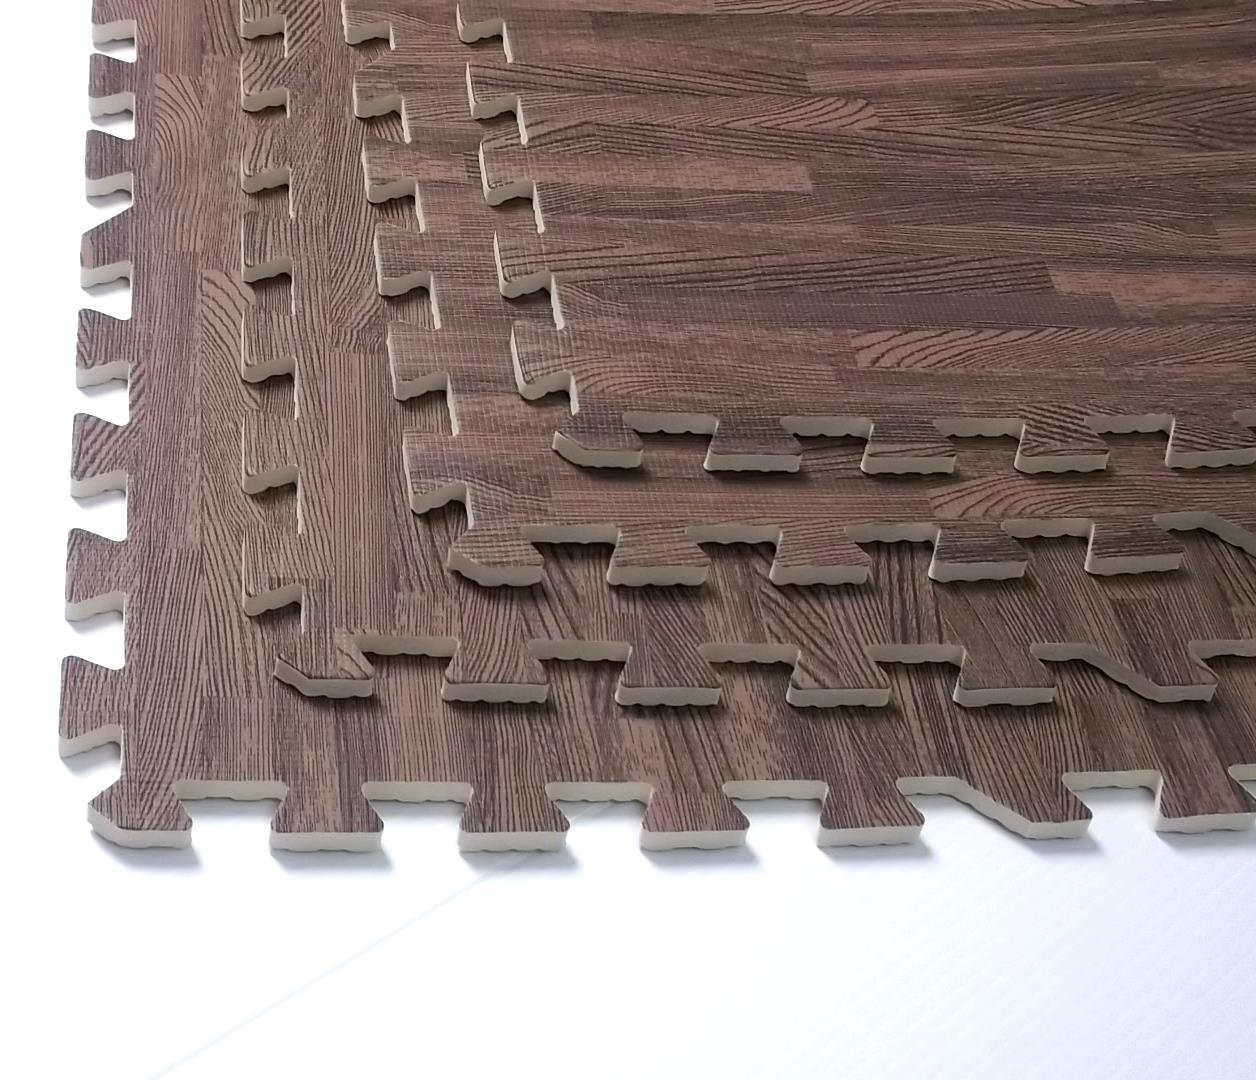 Amazon.com : 96 SQFT Wood Grain Interlocking Foam Anti Fatigue Flooring  2'x2'x3/8